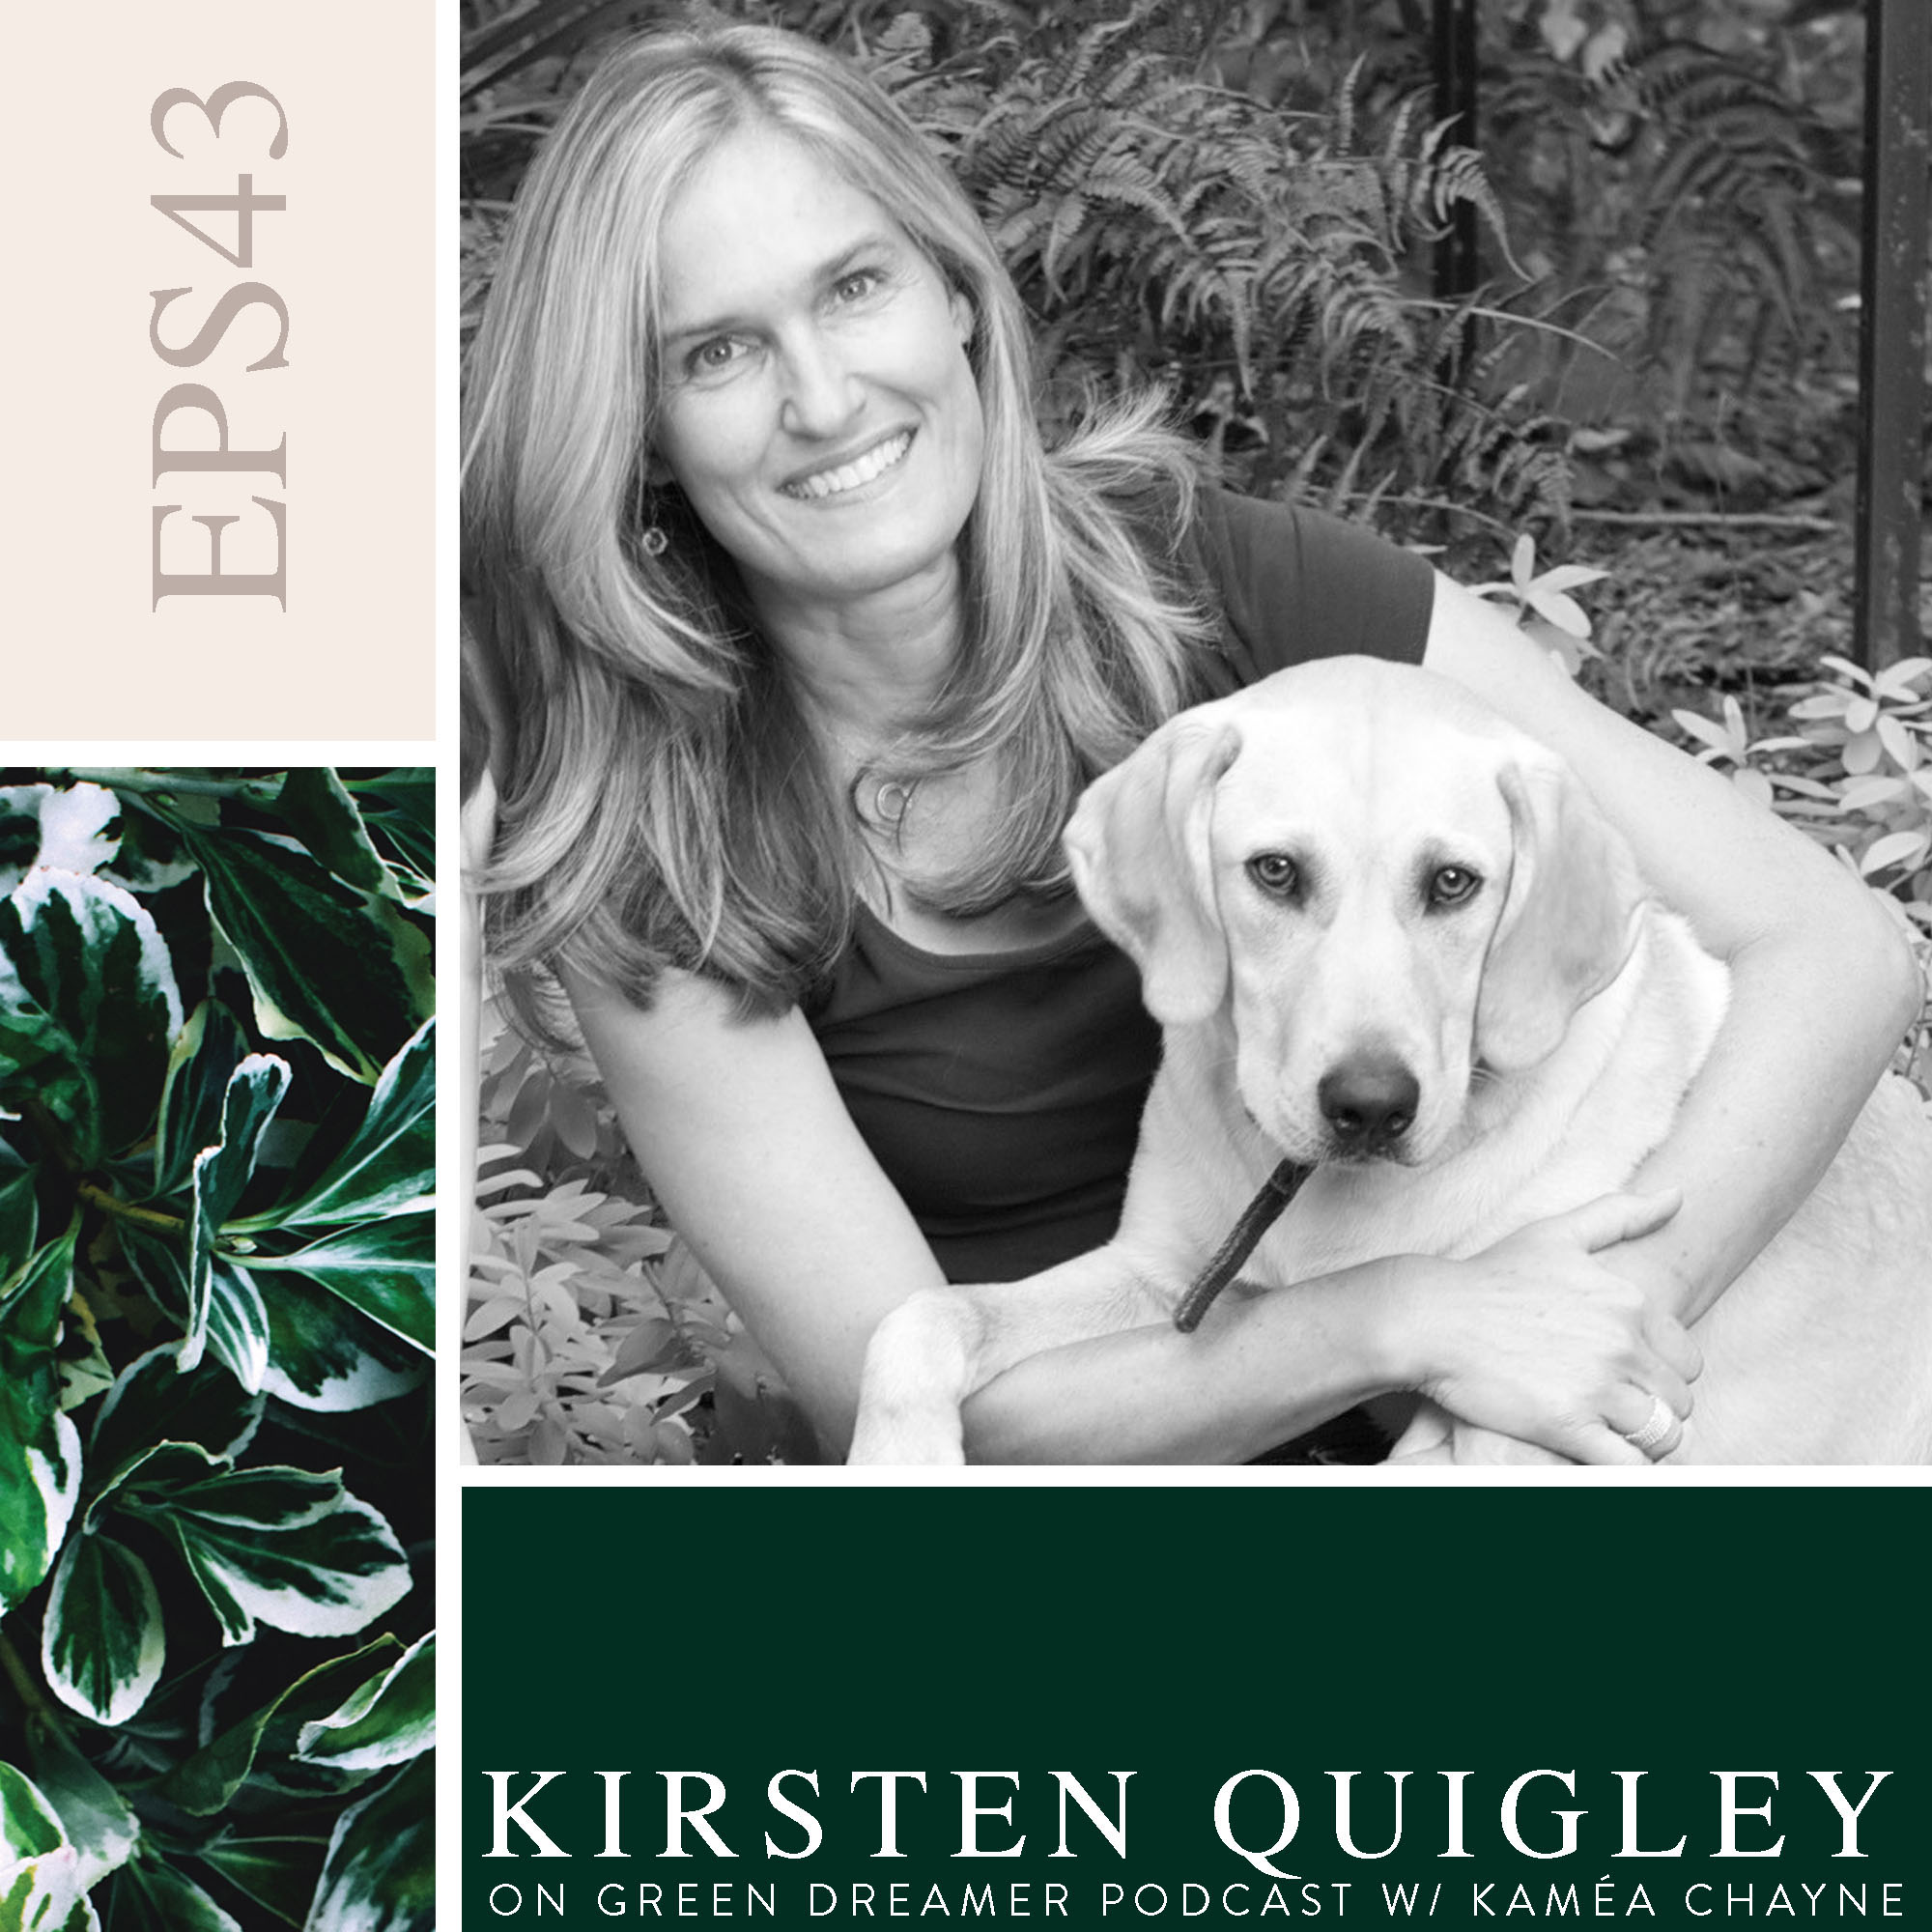 43) BW Kirsten-Quigley-of-LunchSkins-talks-sustainability-on-Green-Dreamer-Podcast-with-Kaméa-Chayne.jpg